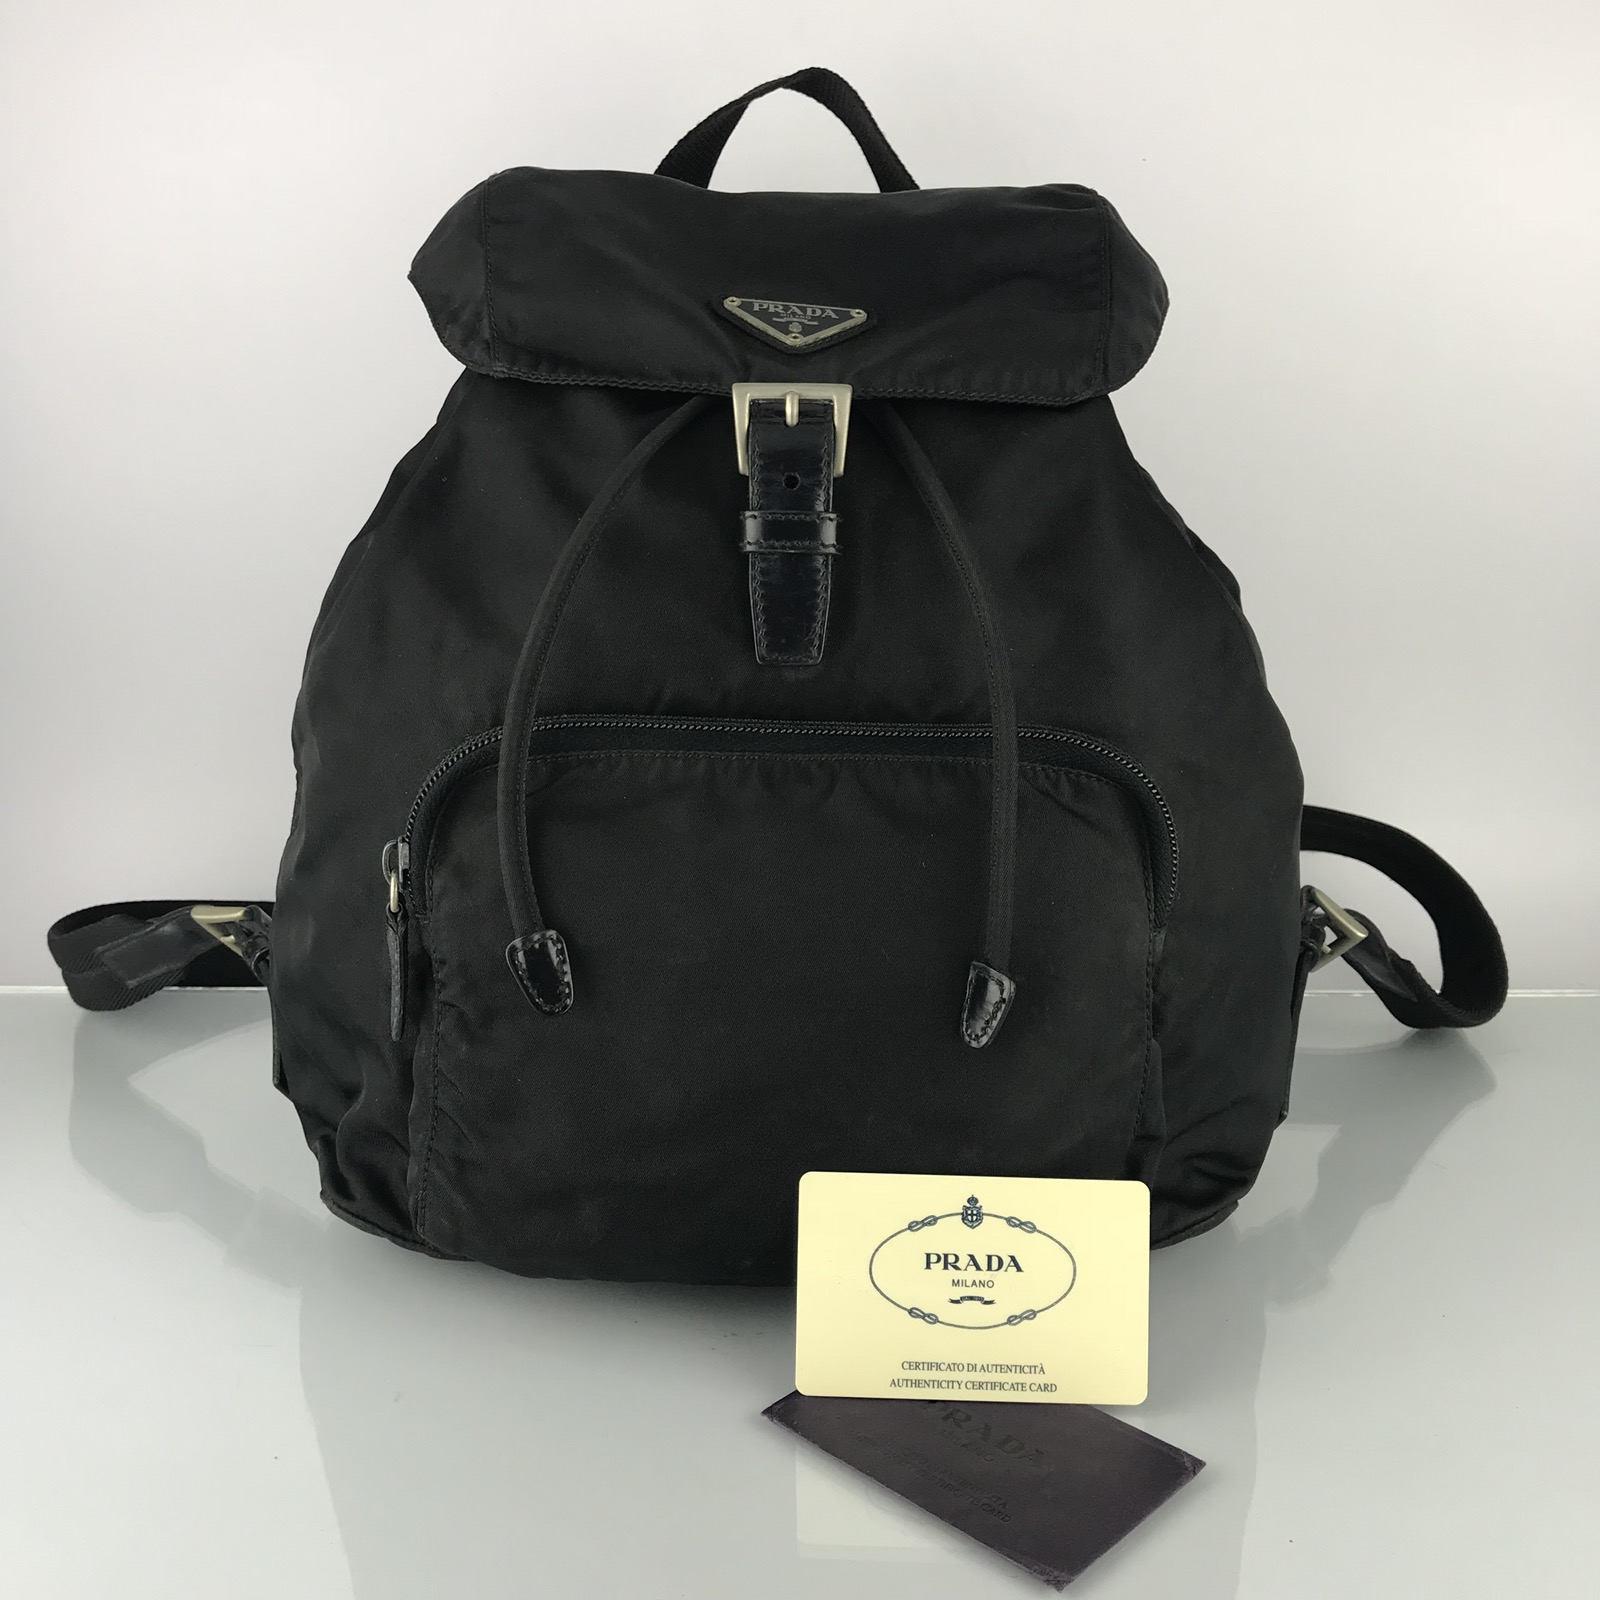 73ff03e328a716 Prada Authentic Vintage Prada Nylon Backpack Bag | Grailed